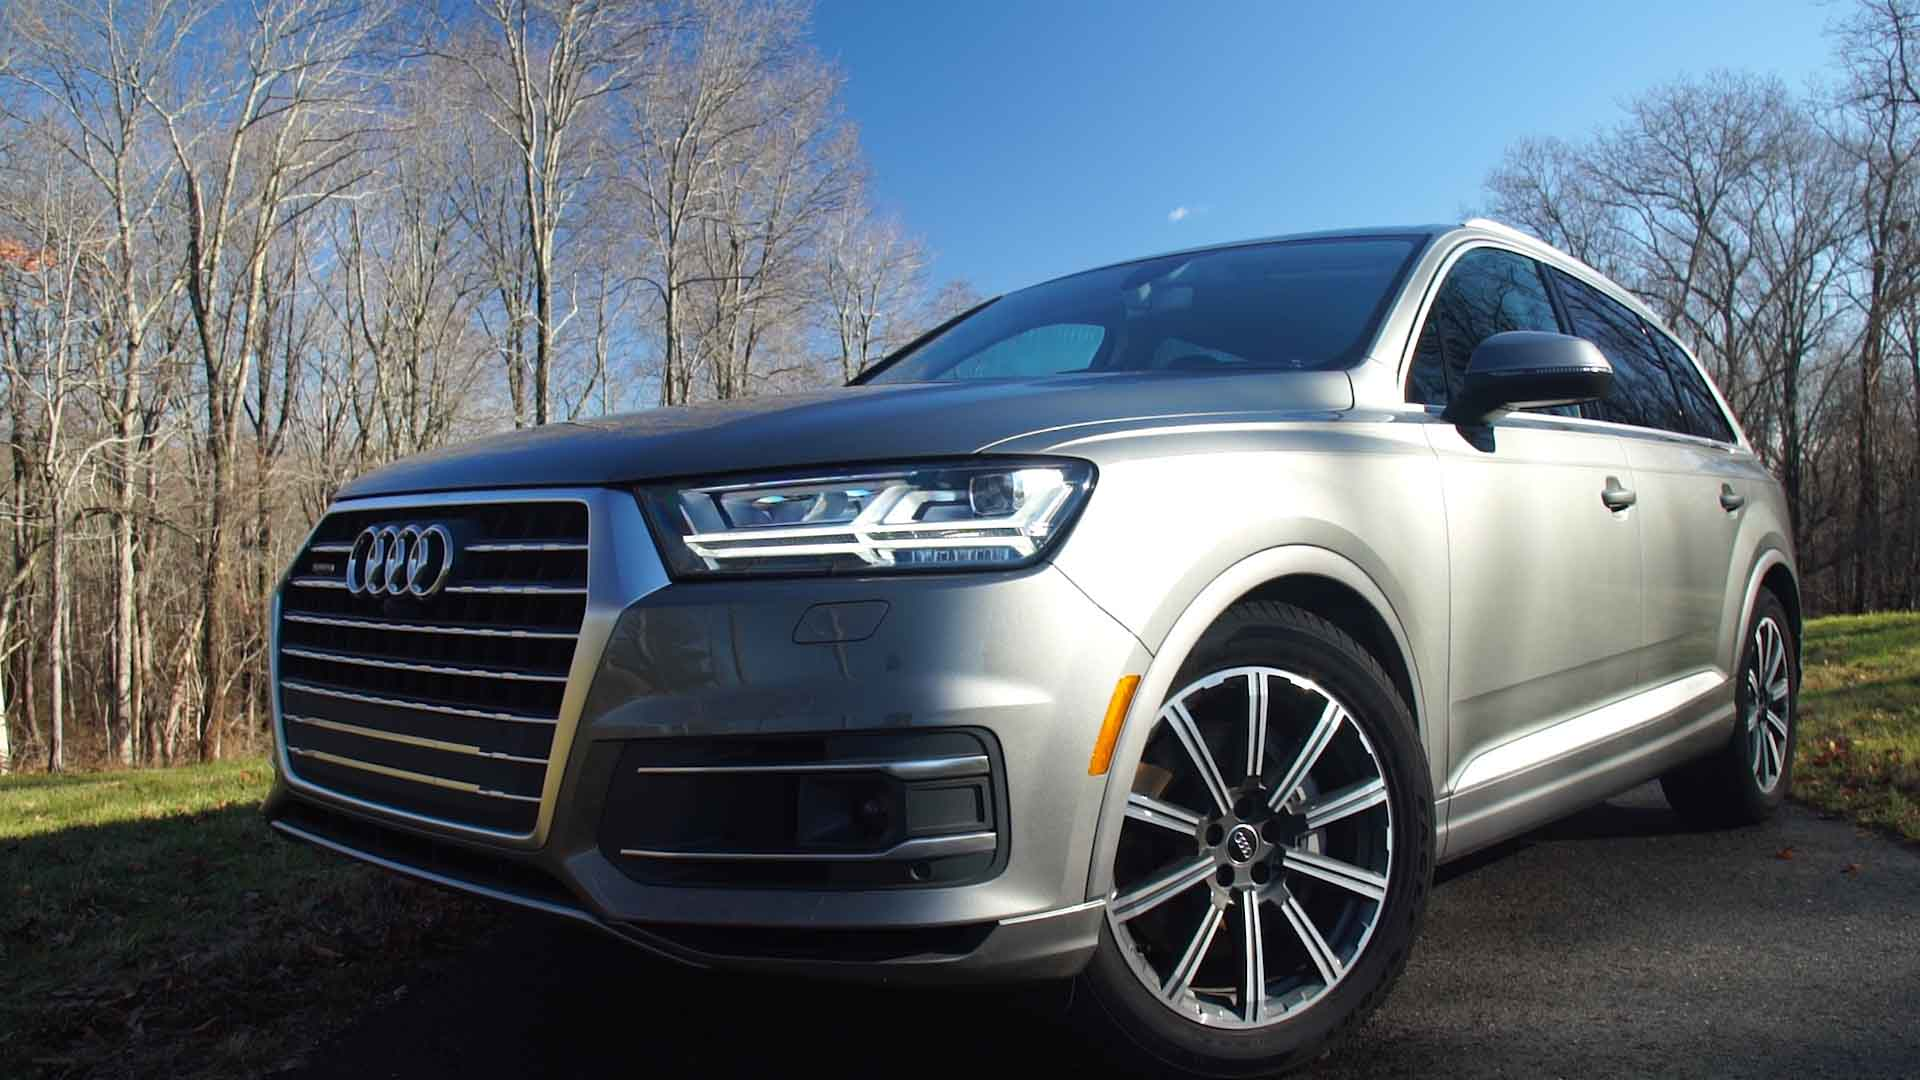 2017 Audi Q7 Suv Proves Slick And Opulent Consumer Reports